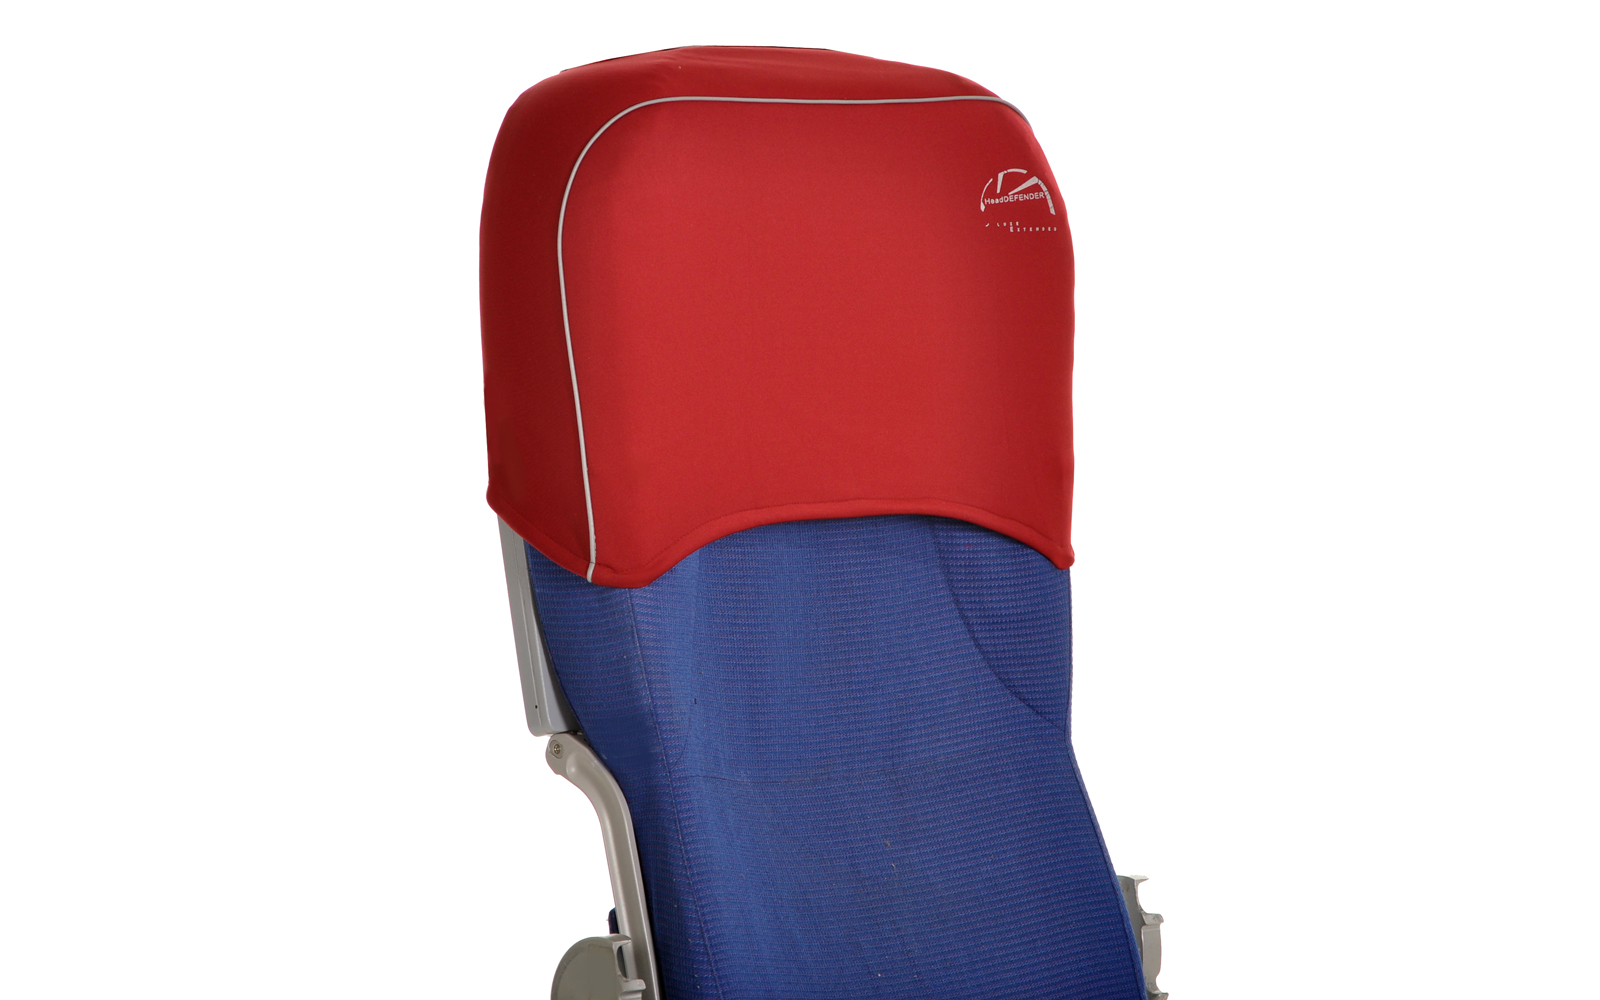 The HeadDEFENDER covers the top of your airplane seat.